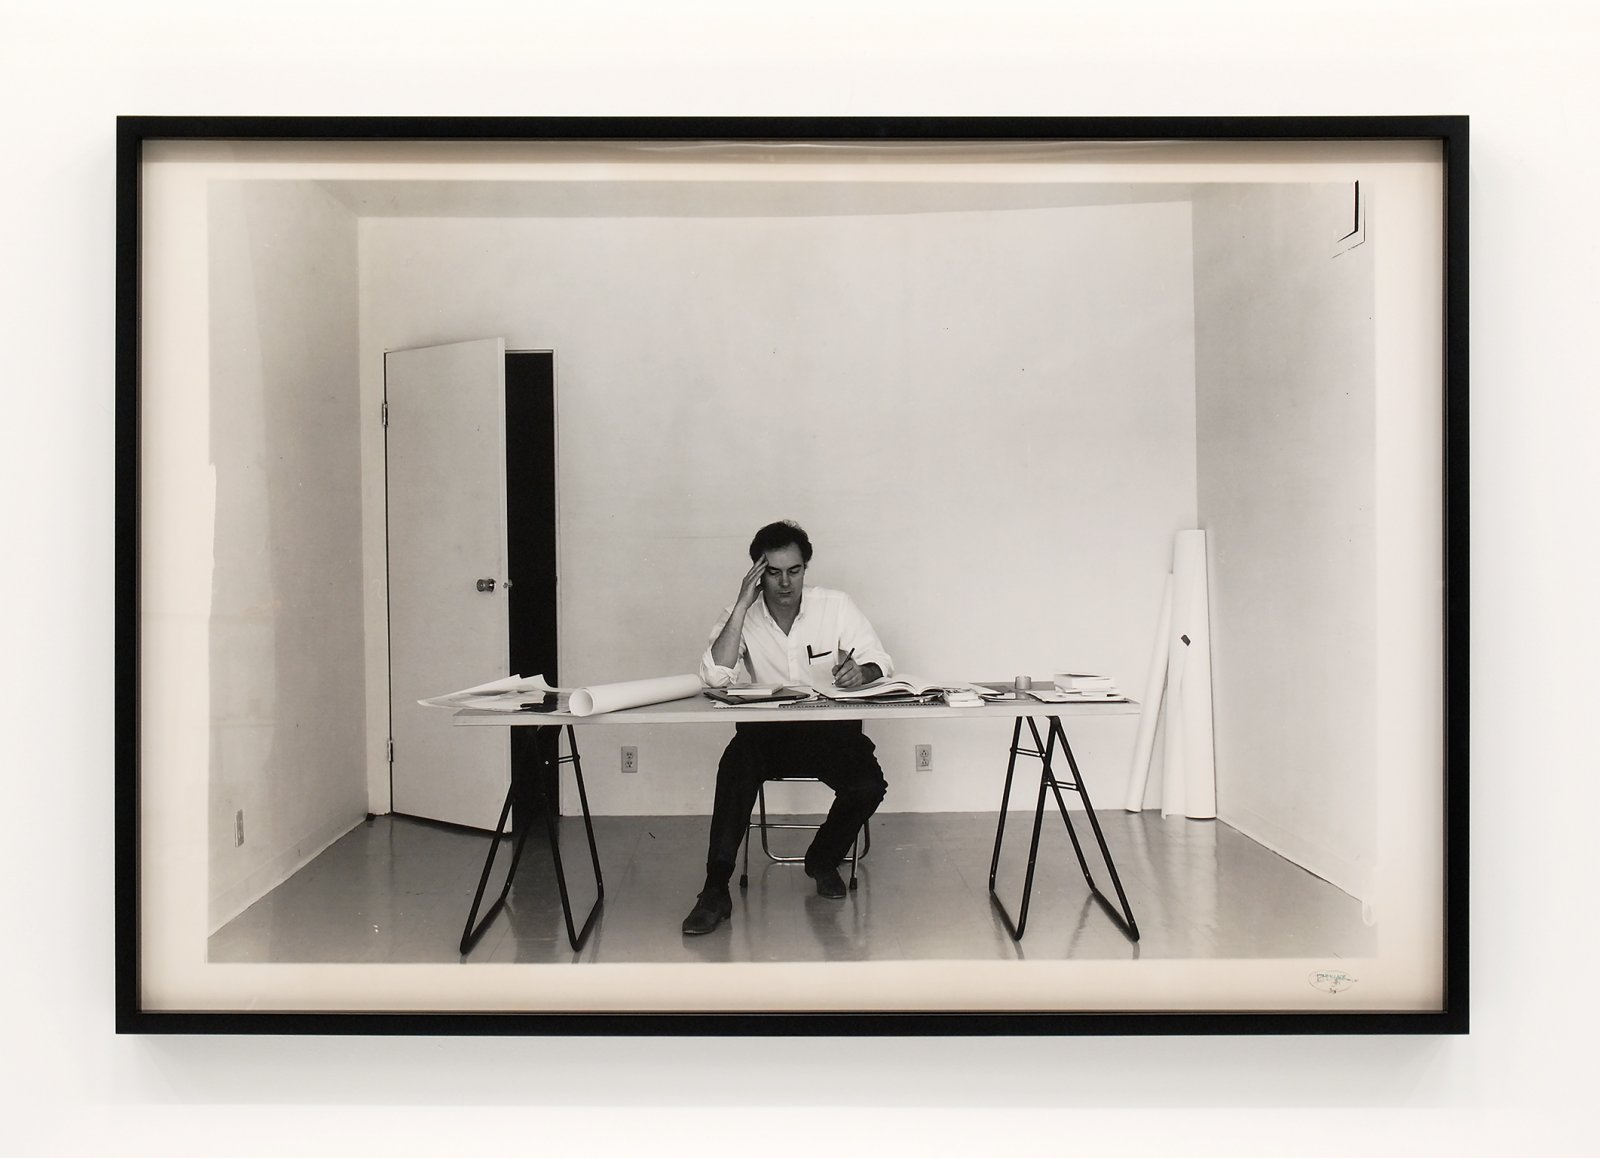 Ian Wallace, At Work 1983, 1983, black and white photograph on RC paper, 42 x 62 in. (107 x 157 cm) by Ian Wallace